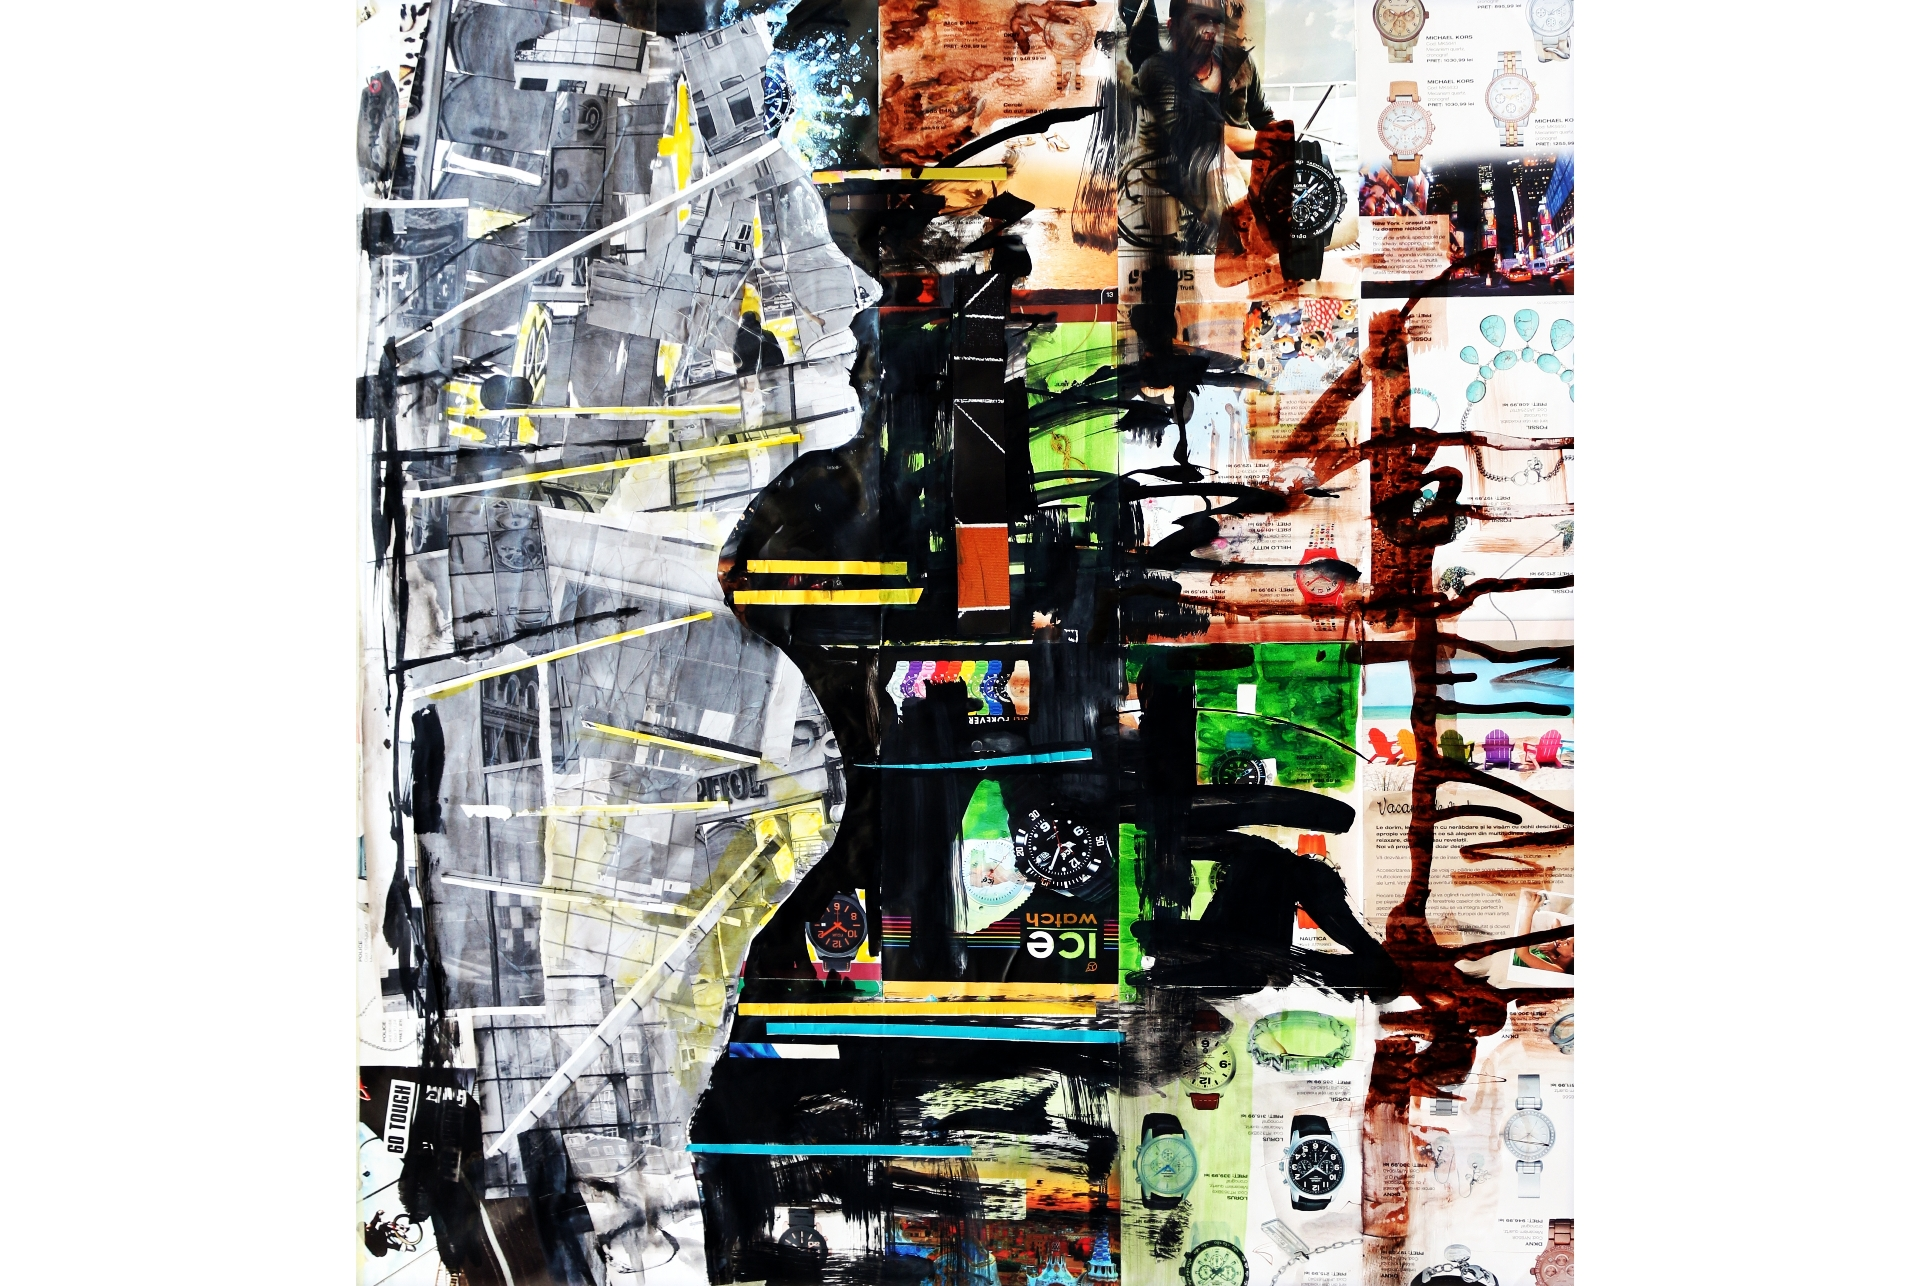 Artwork by Mirela Iordache. All rights reserved.